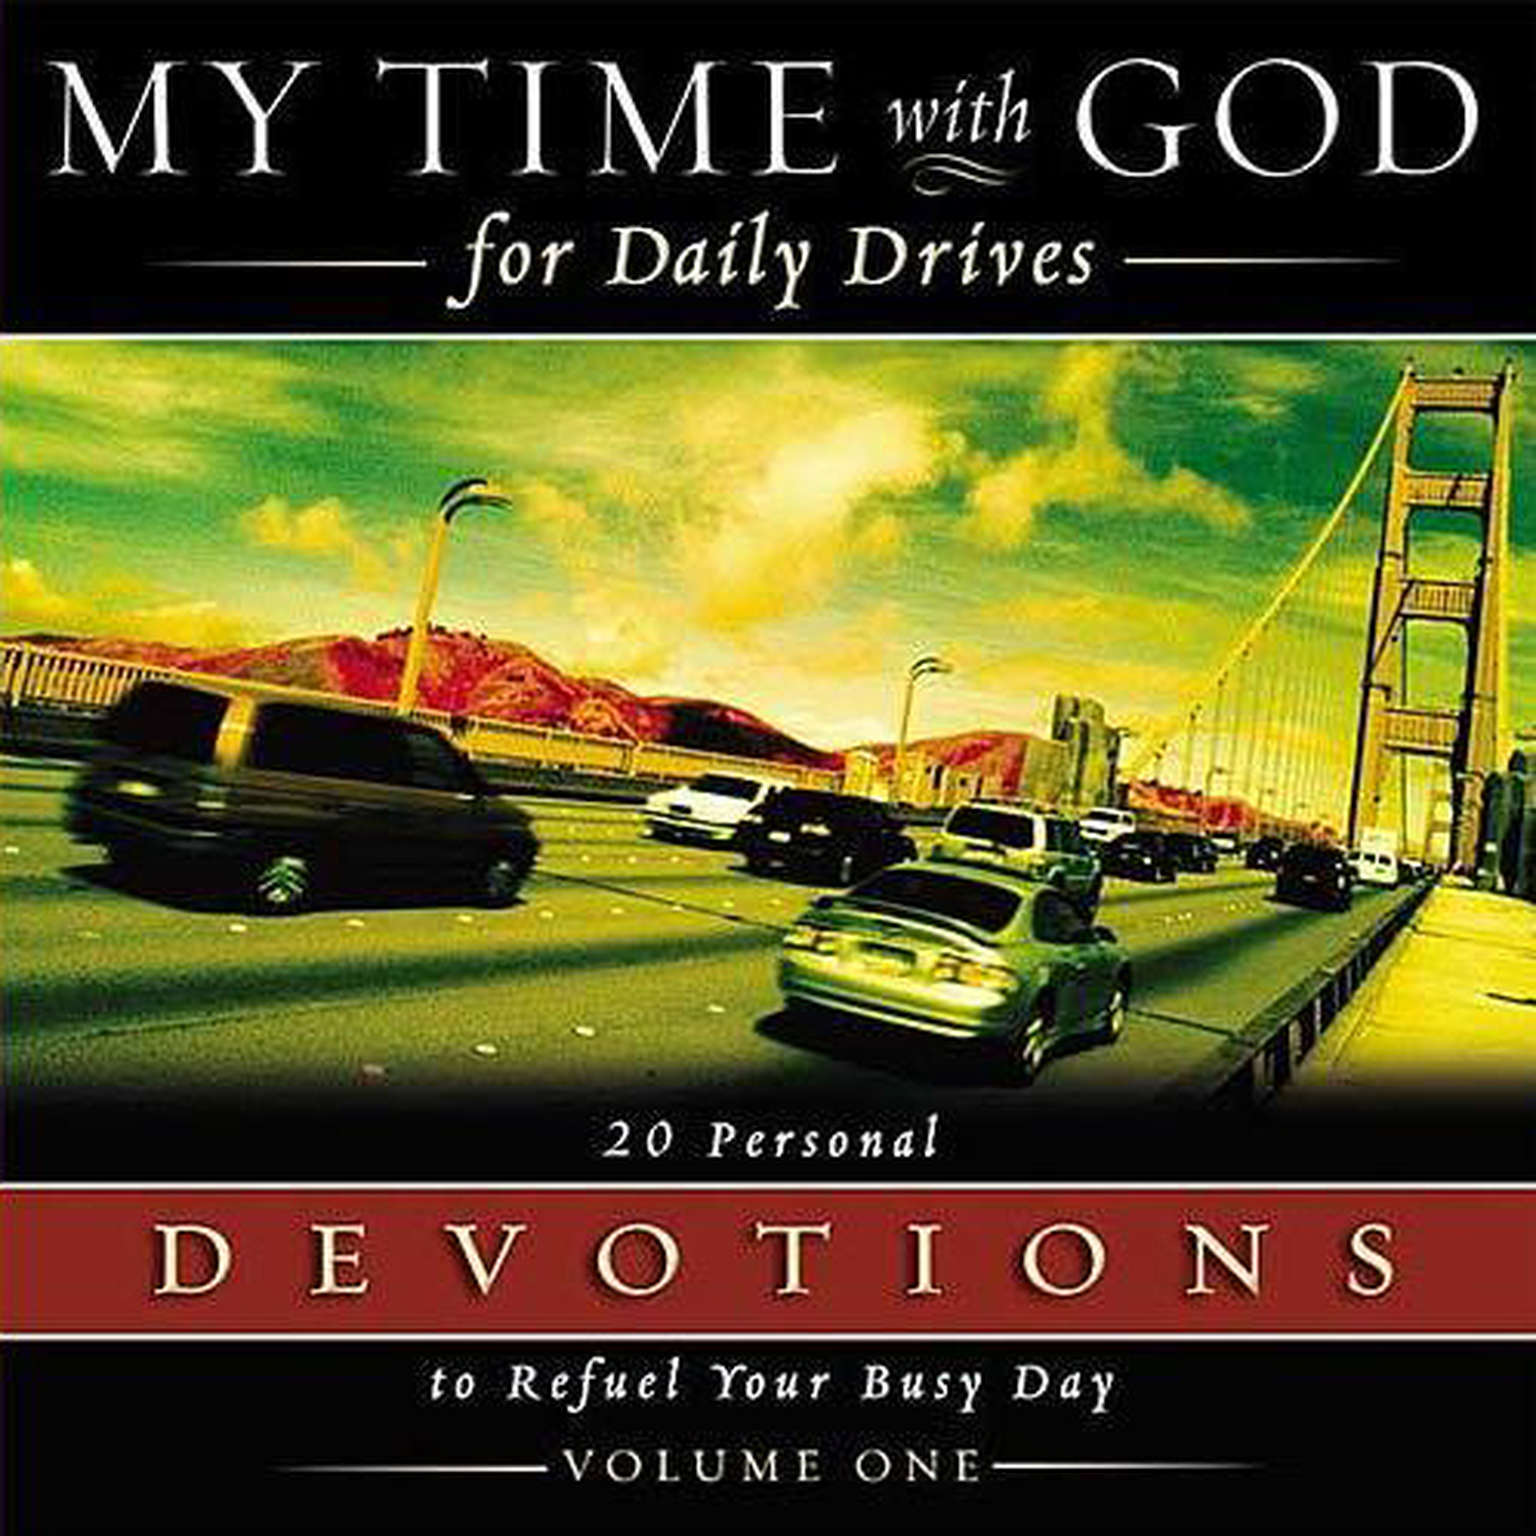 Printable My Time with God for Daily Drives: Vol. 1: 20 Personal Devotions to Refuel Your Day Audiobook Cover Art